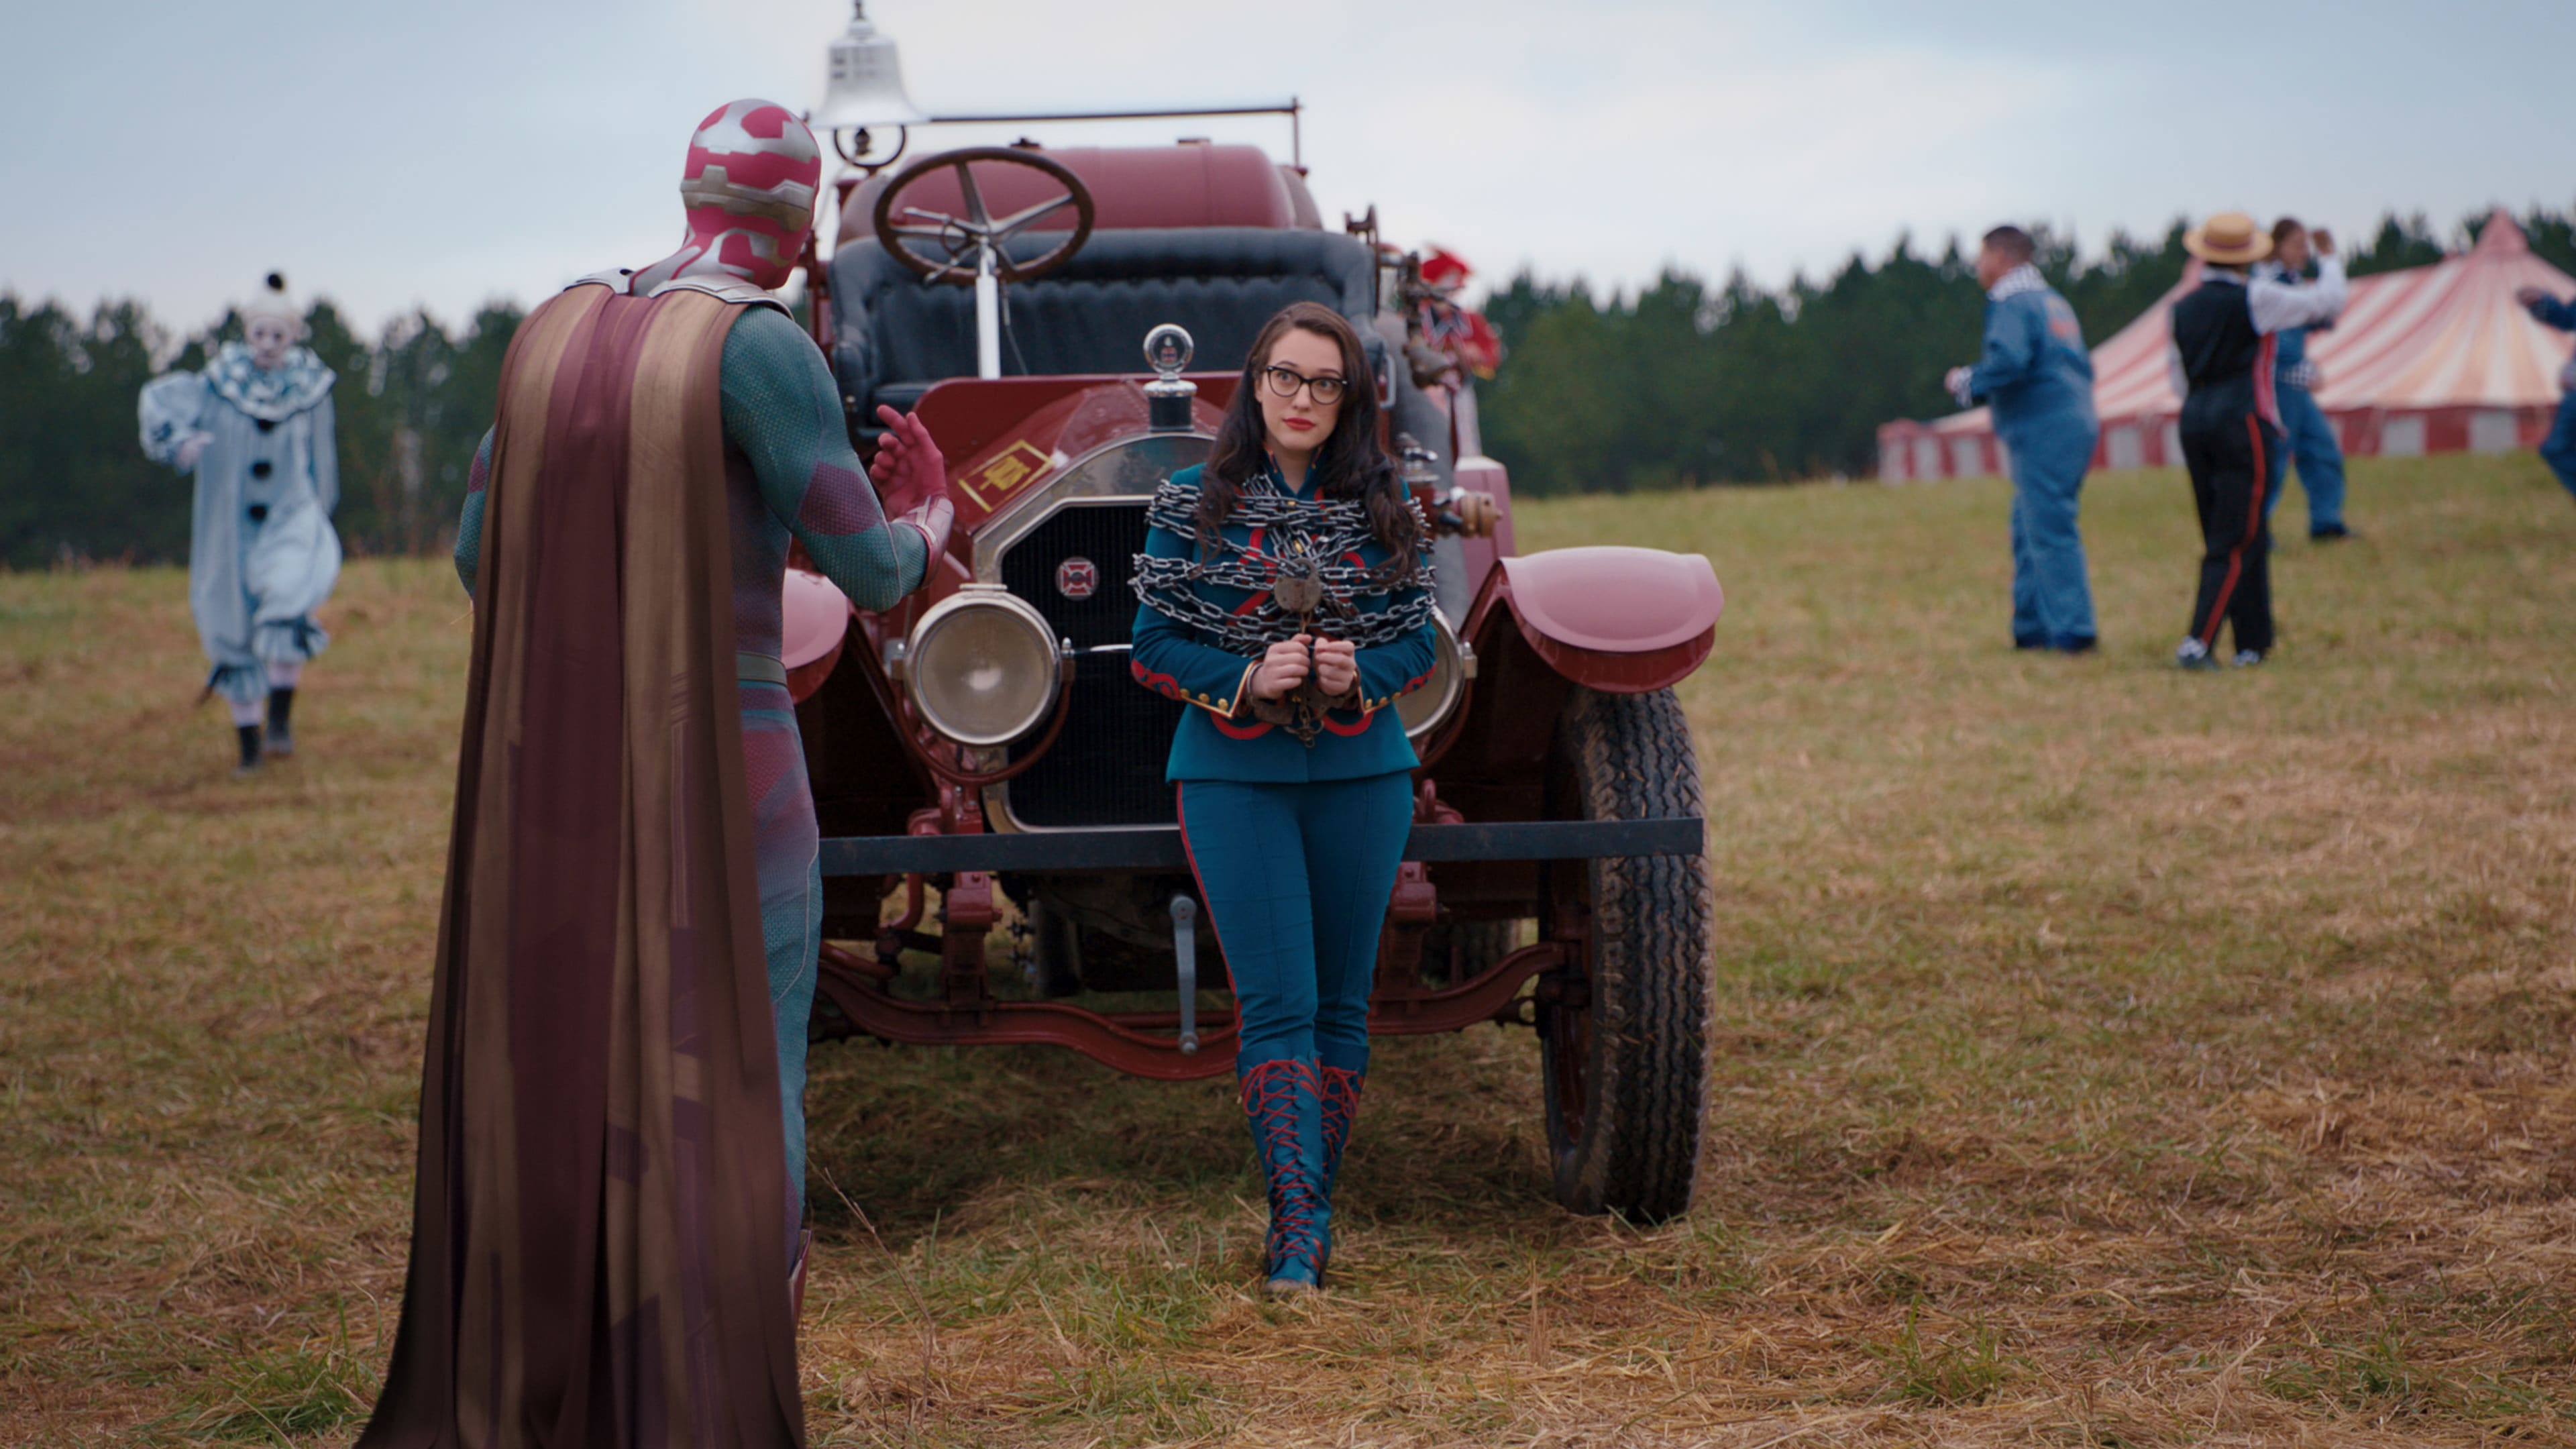 (L-R): Paul Bettany as Vision and Kat Dennings as Darcy Lewis in Marvel Studios' WANDAVISION exclusively on Disney+. Photo courtesy of Marvel Studios. ©Marvel Studios 2021. All Rights Reserved.